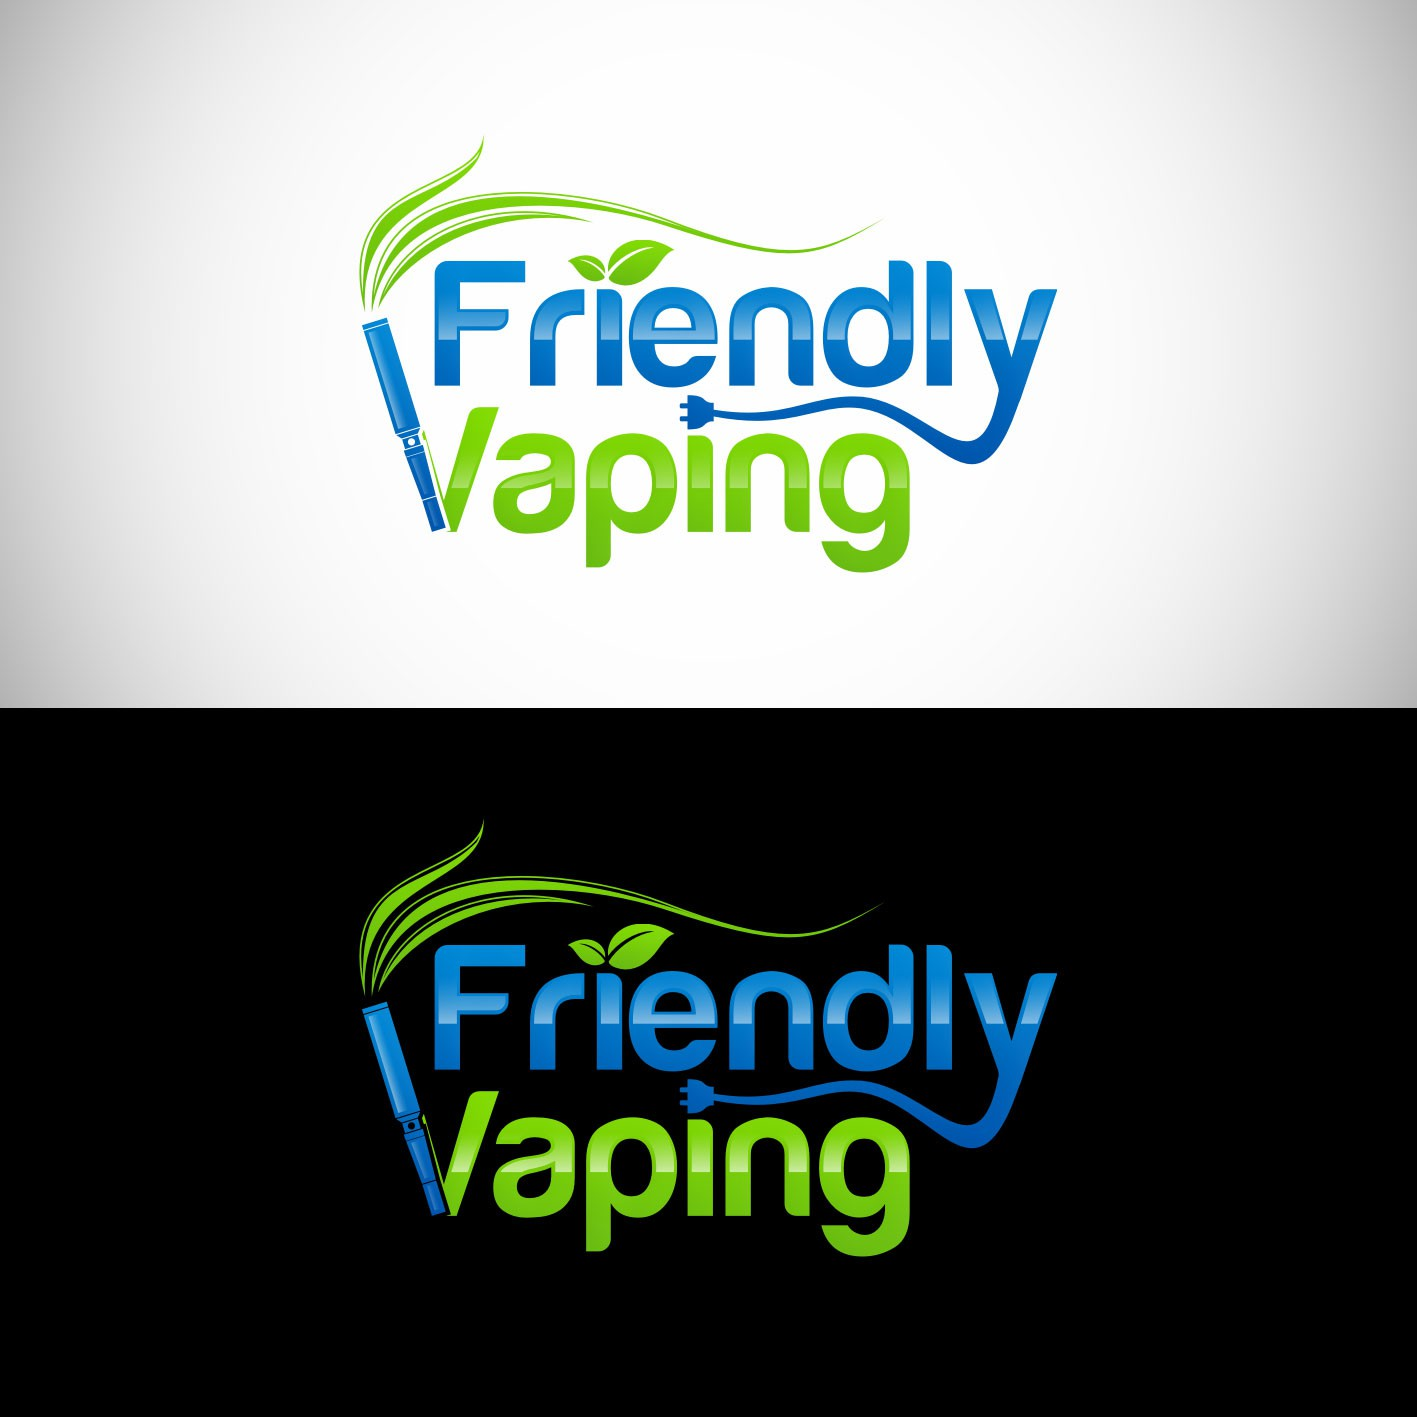 New logo wanted for Friendly Vaping